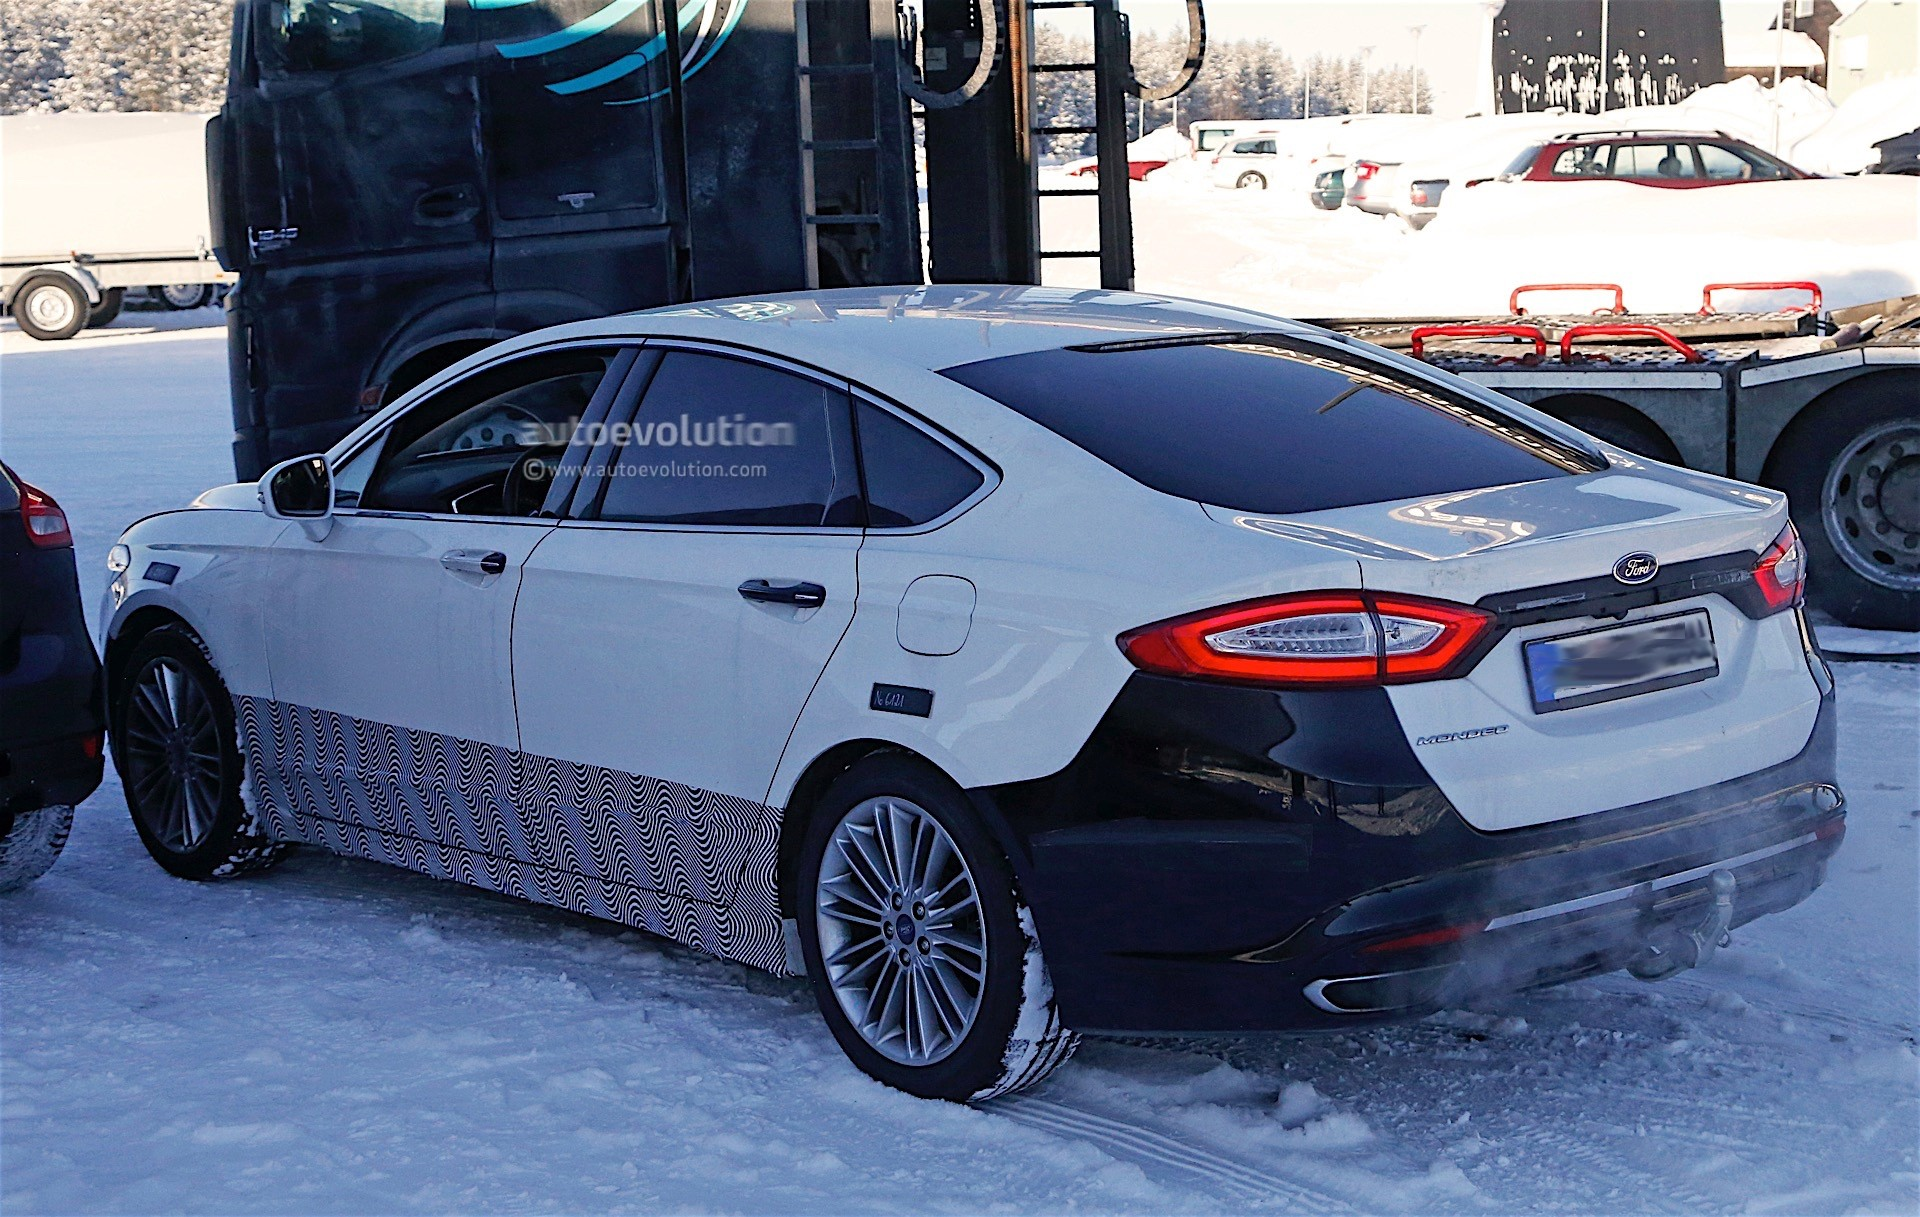 2017 ford mondeo facelift spyshots reveal refreshed lights and bumpers